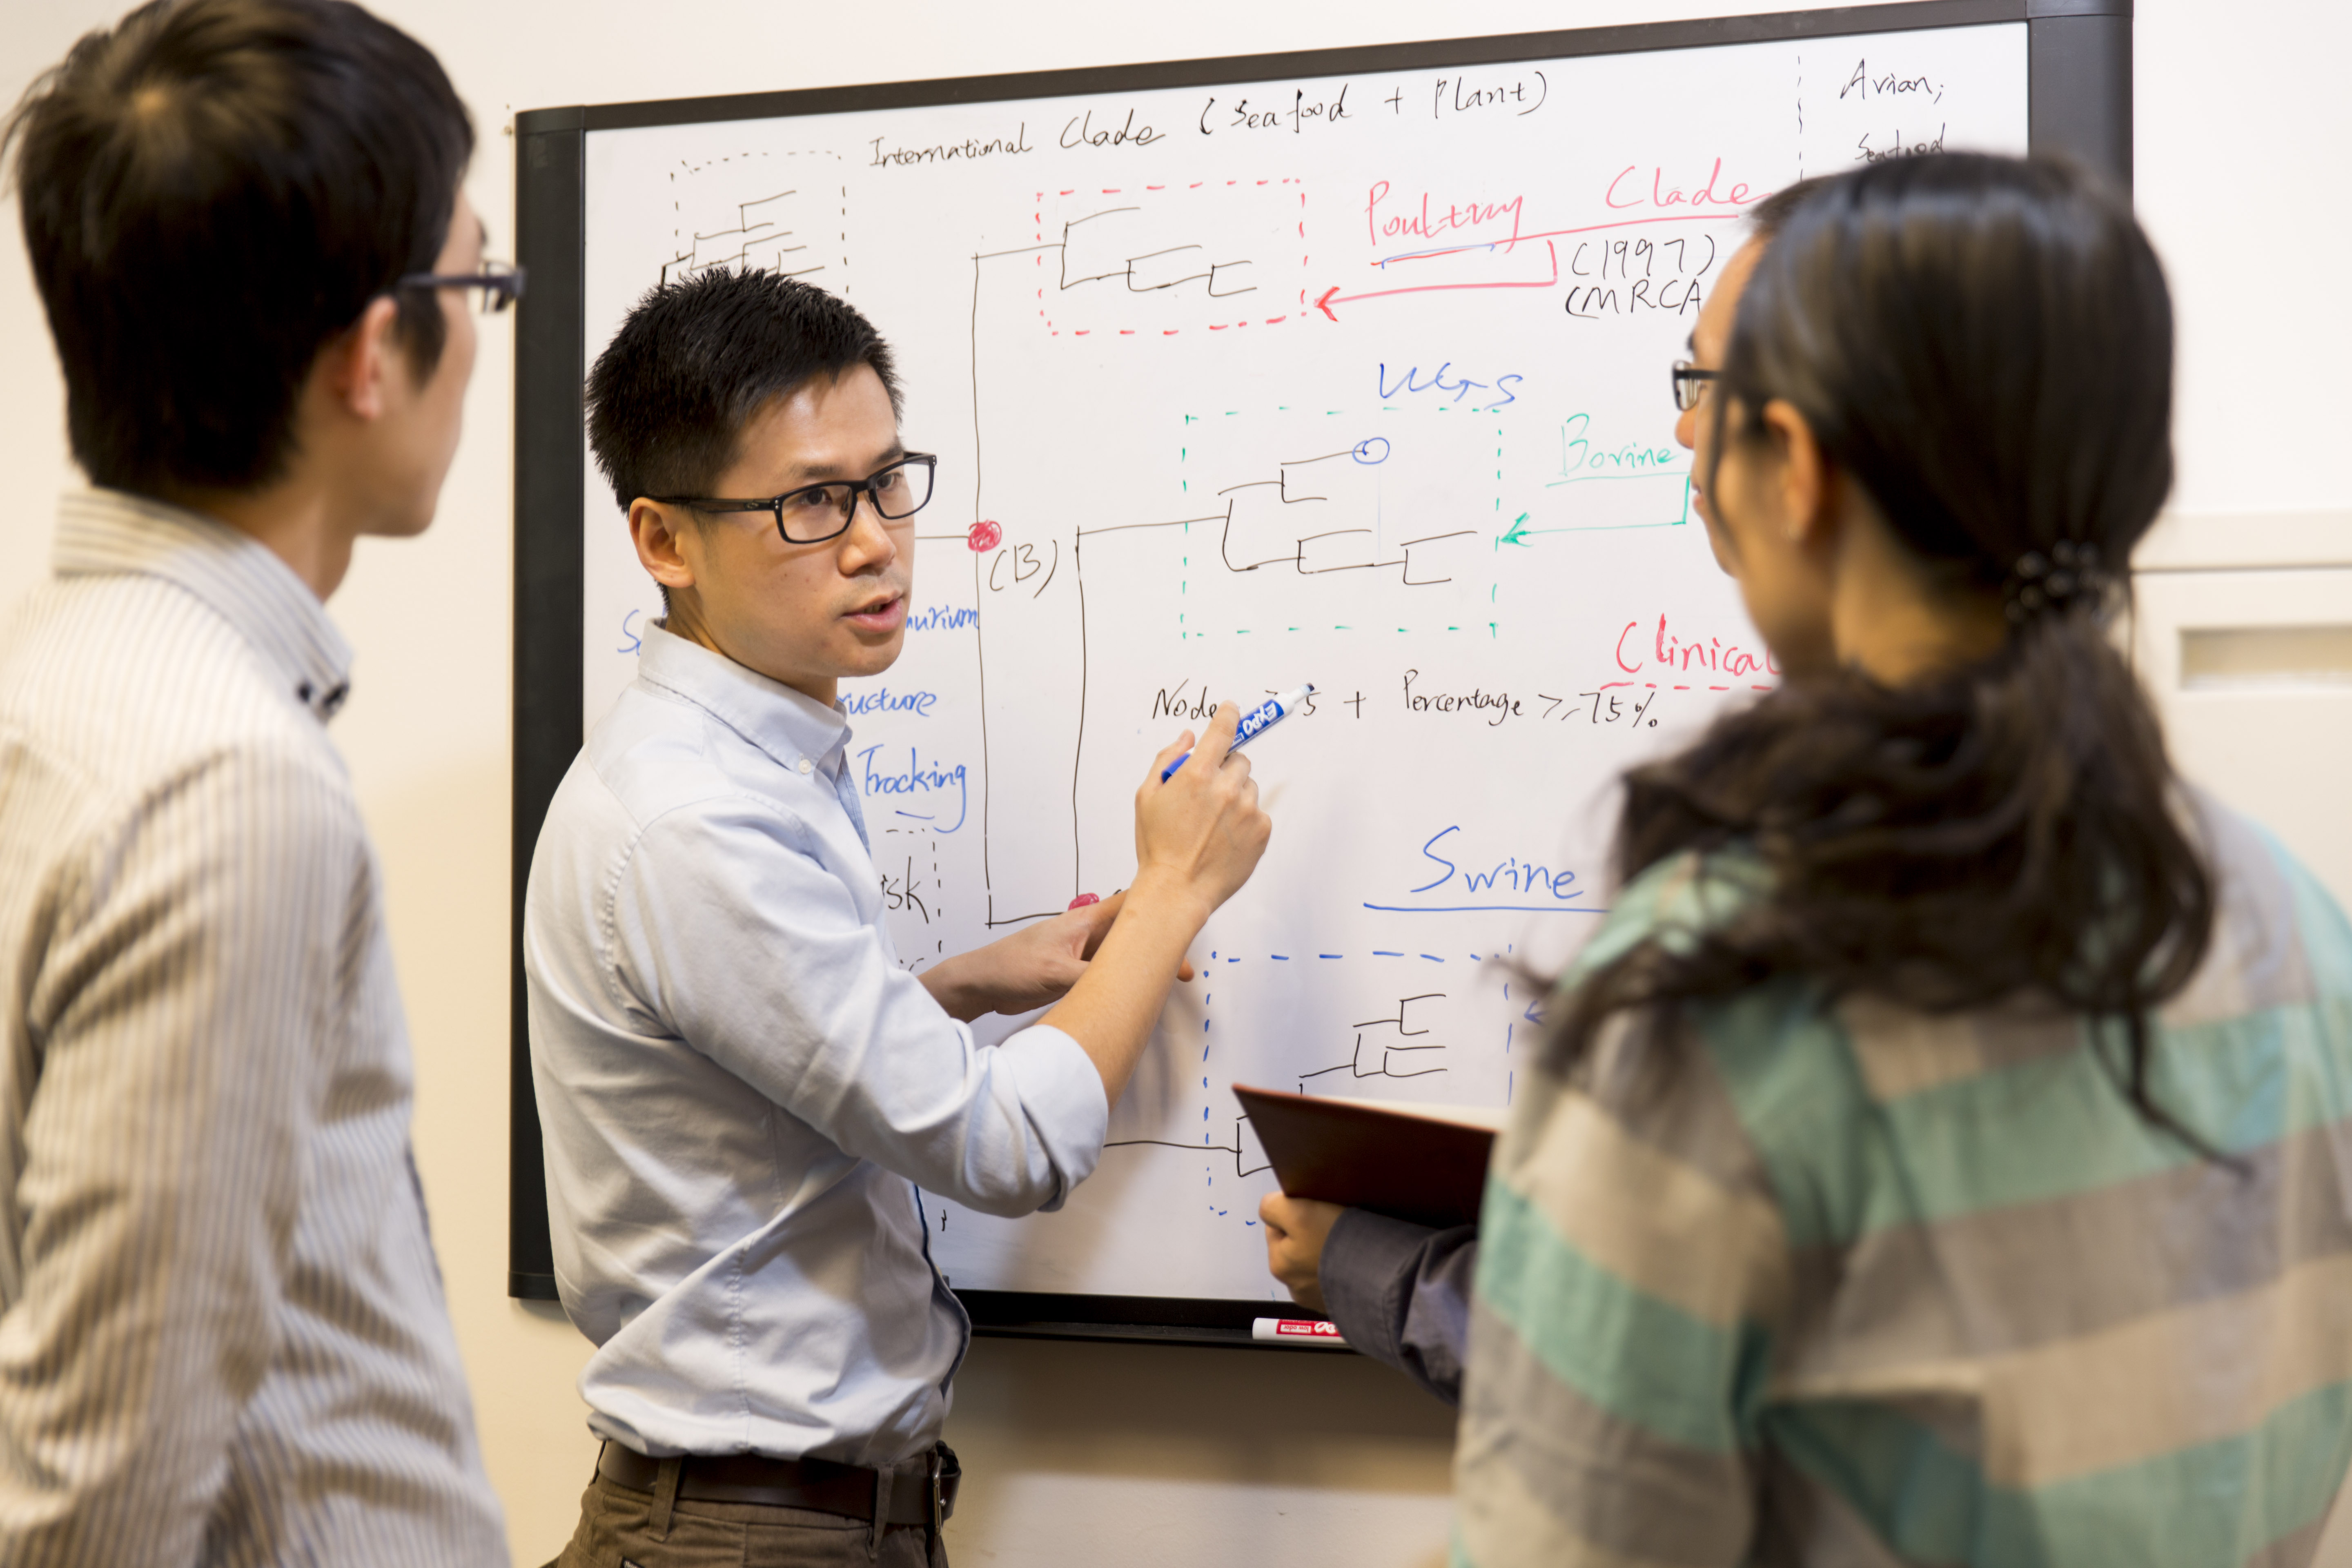 Xiangyu Deng, an assistant professor of food microbiology with the Center for Food Safety (CFS) on the UGA Griffin campus, has creating a cloud-based software tool that quickly classifies strains of salmonella, one of the most prevalent foodborne pathogens in the United States and worldwide.